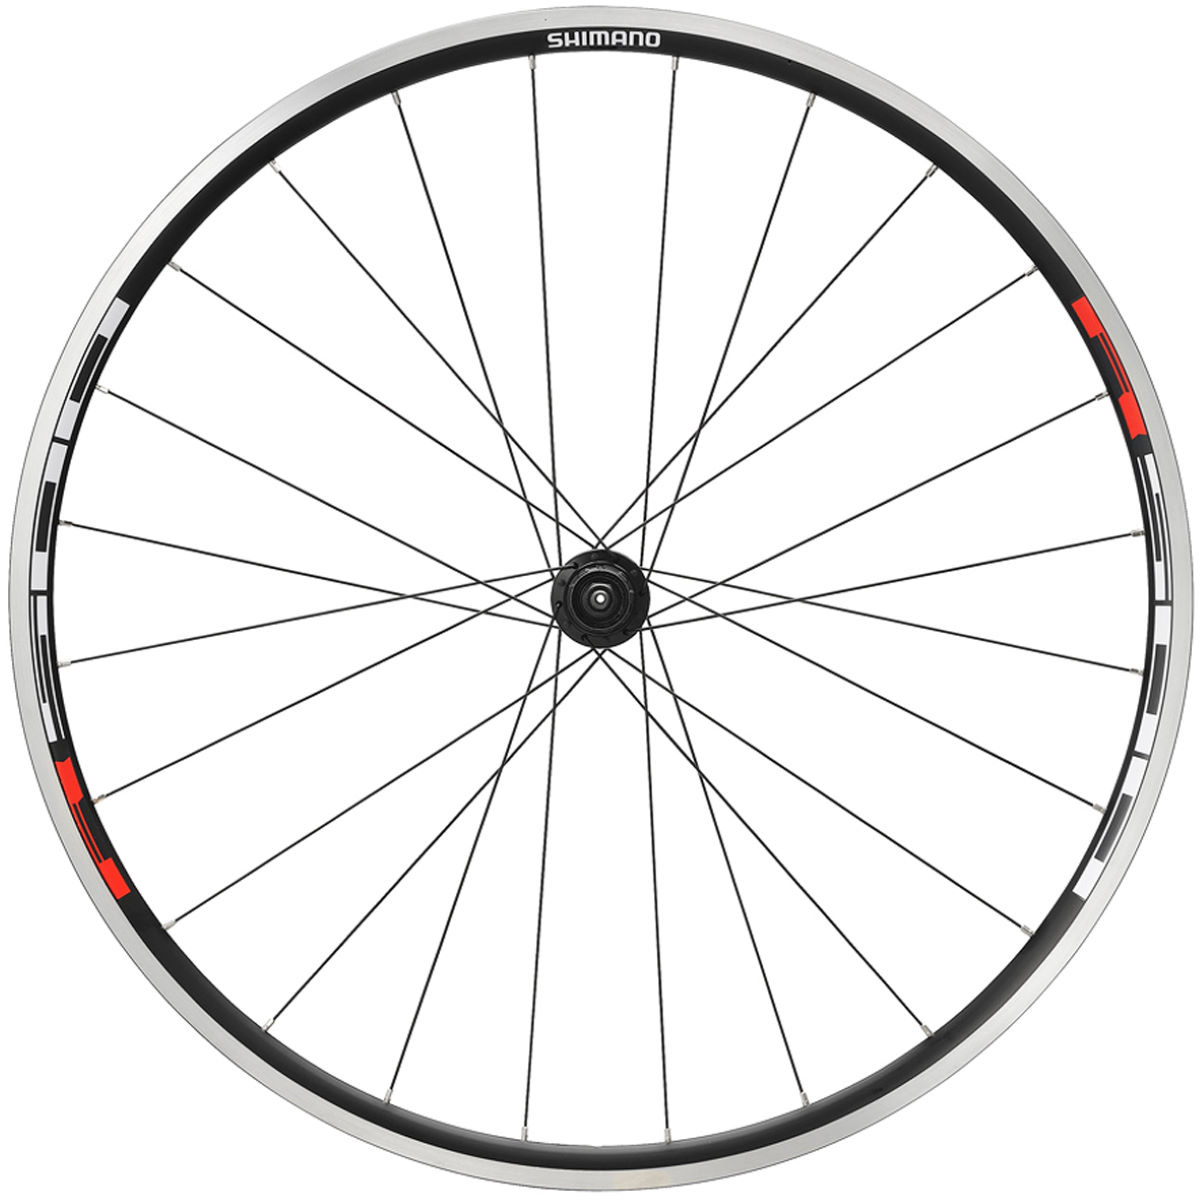 Shimano WH-R501 Clincher Rear Wheel